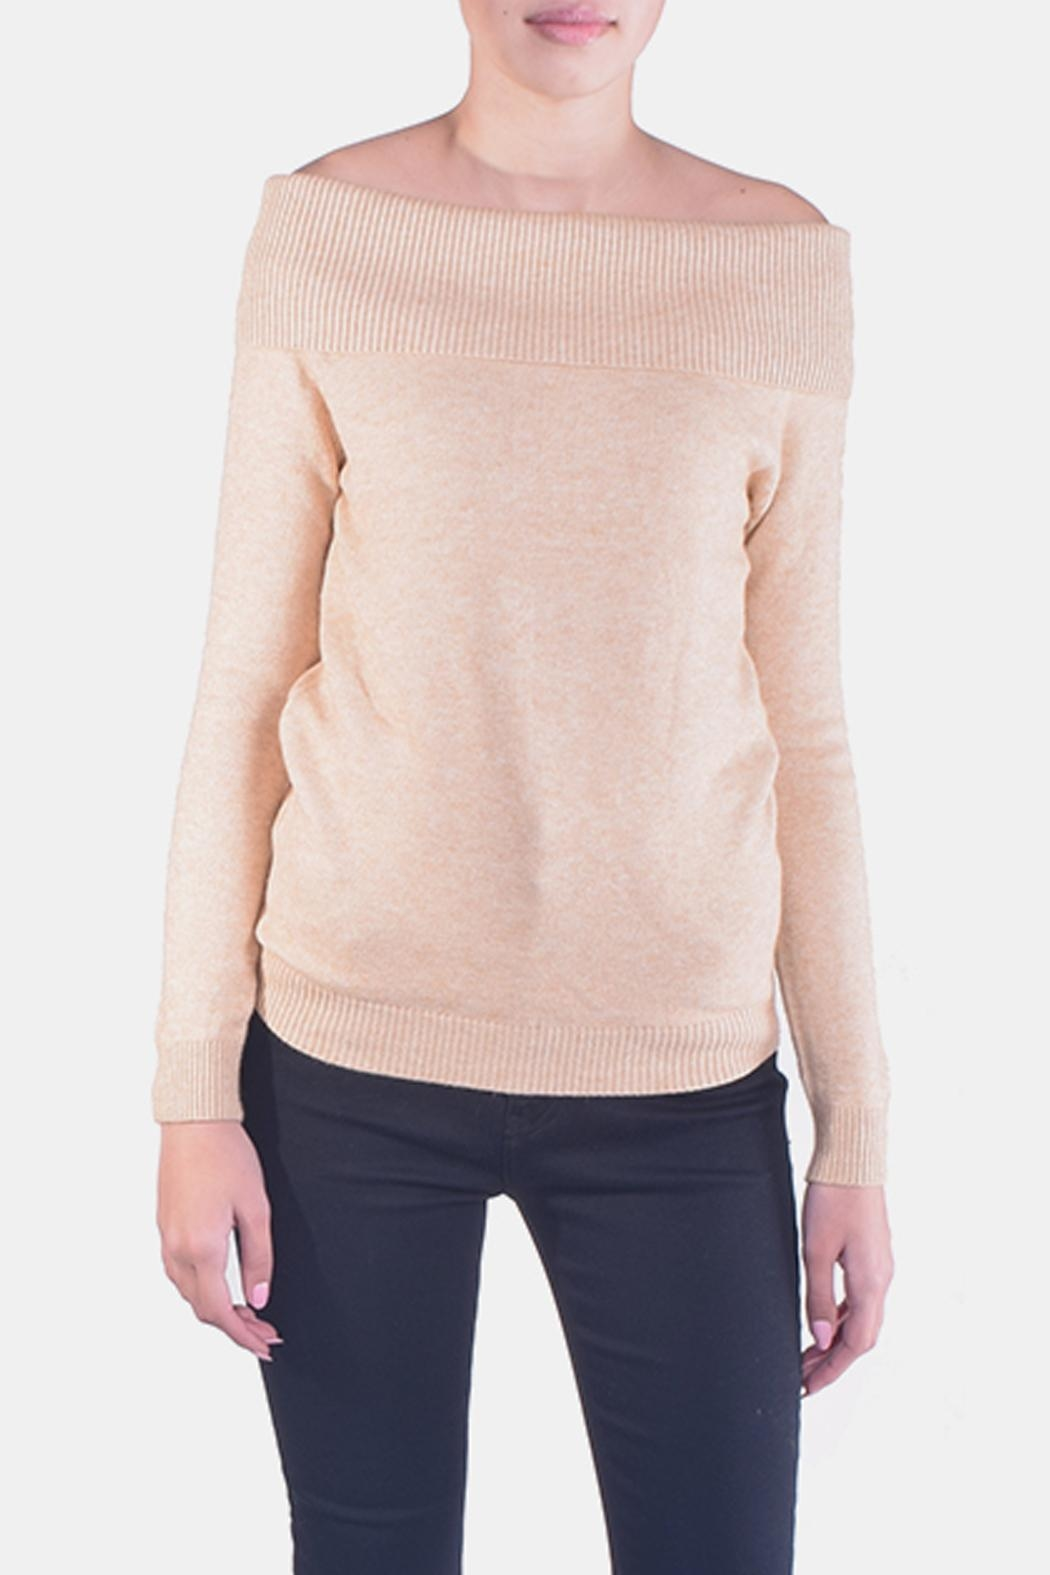 Lumiere Delicate Off-The-Sholder Sweater - Main Image